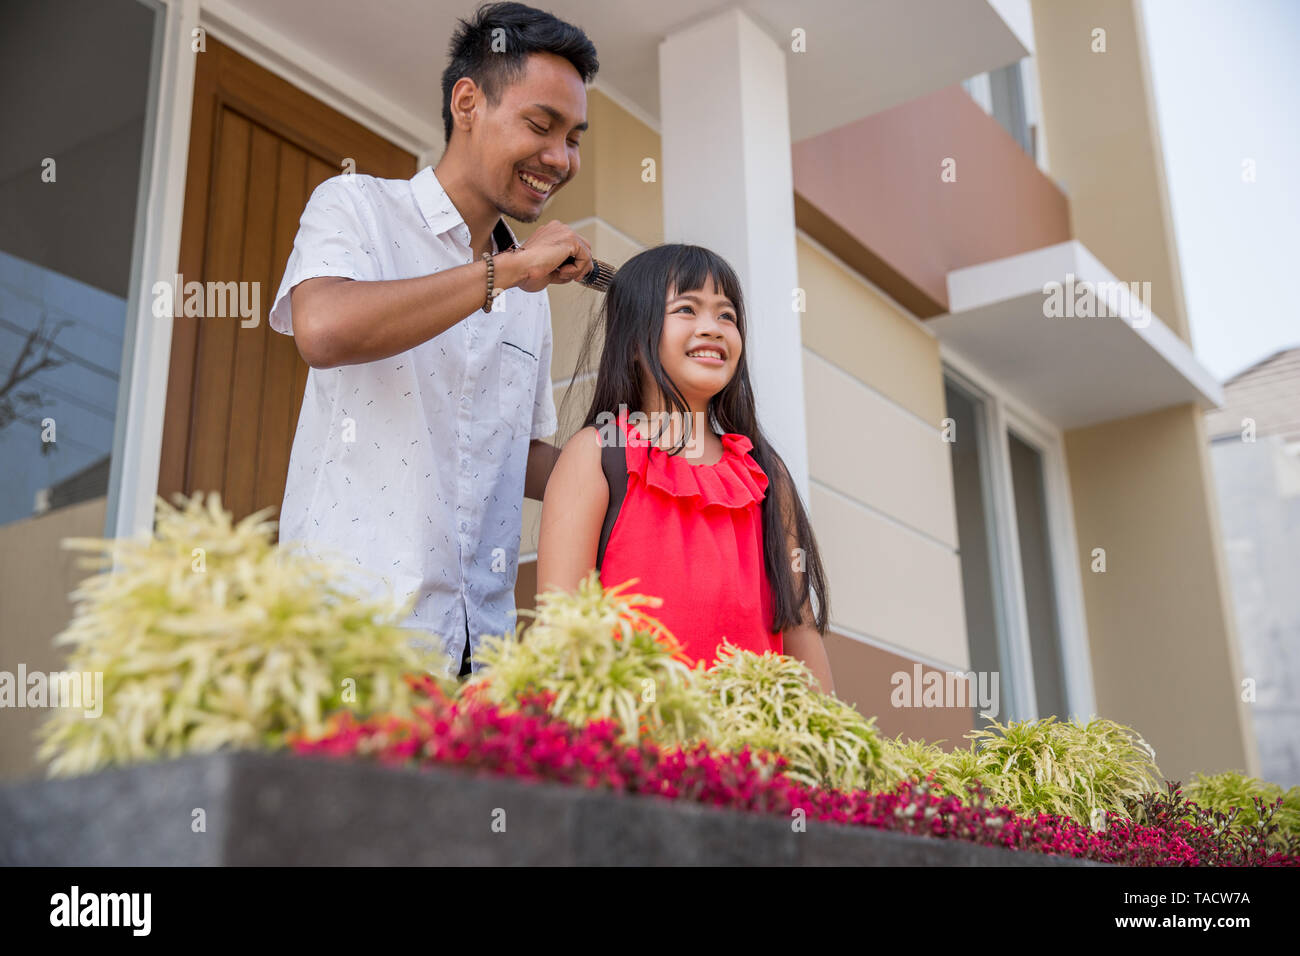 portrait of dad help her daughter to comb her hair at home - Stock Image